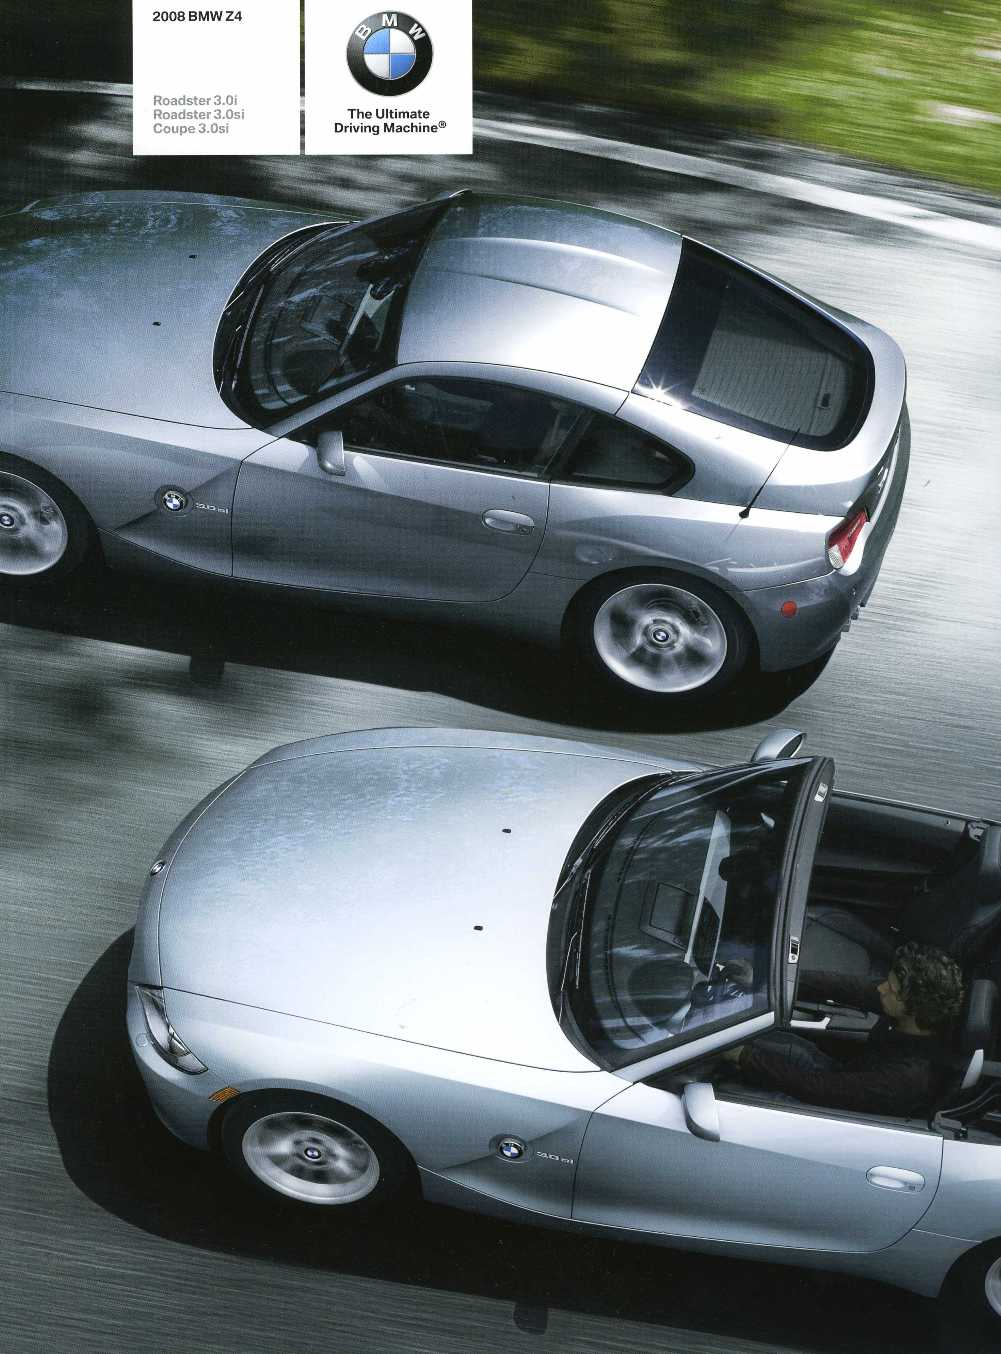 Brochure - 2008 BMW Z4 Roadster 3.0i Roadster 3.0si Coupe 3.0si - E85 / E86 (2nd version)